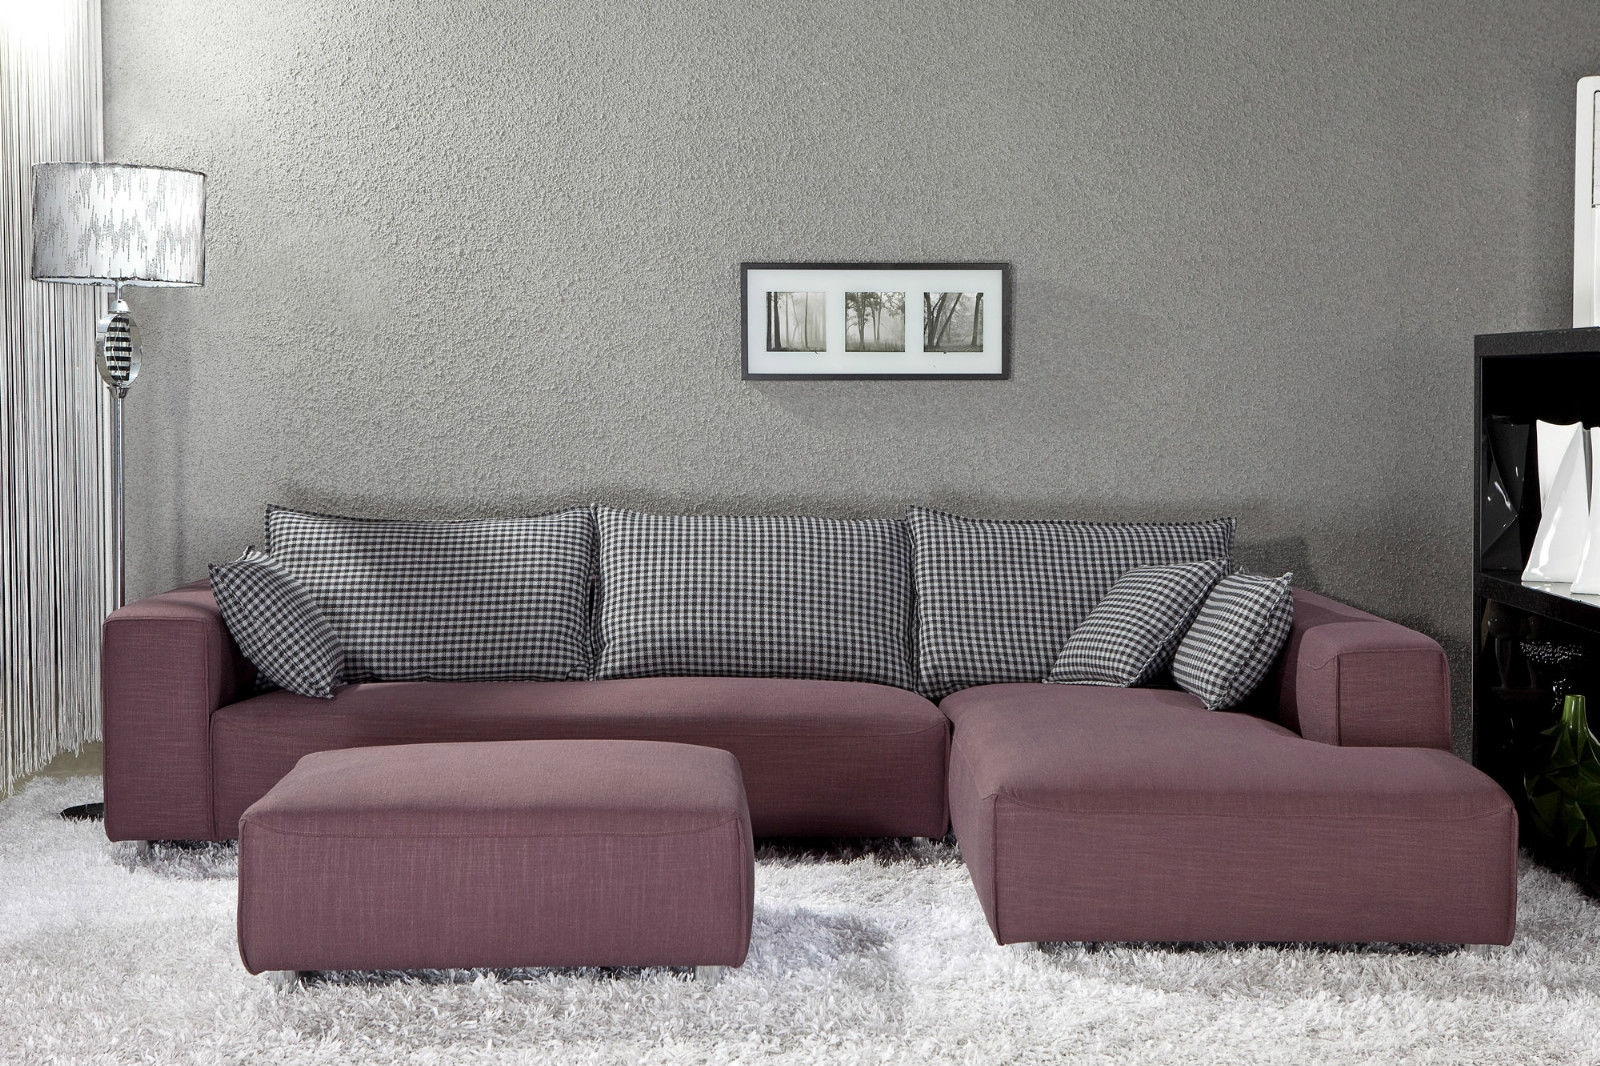 Sofa Small Sectional Sofas For Apartments Decor Modern On Cool For Cool Small Sofas (Image 15 of 15)